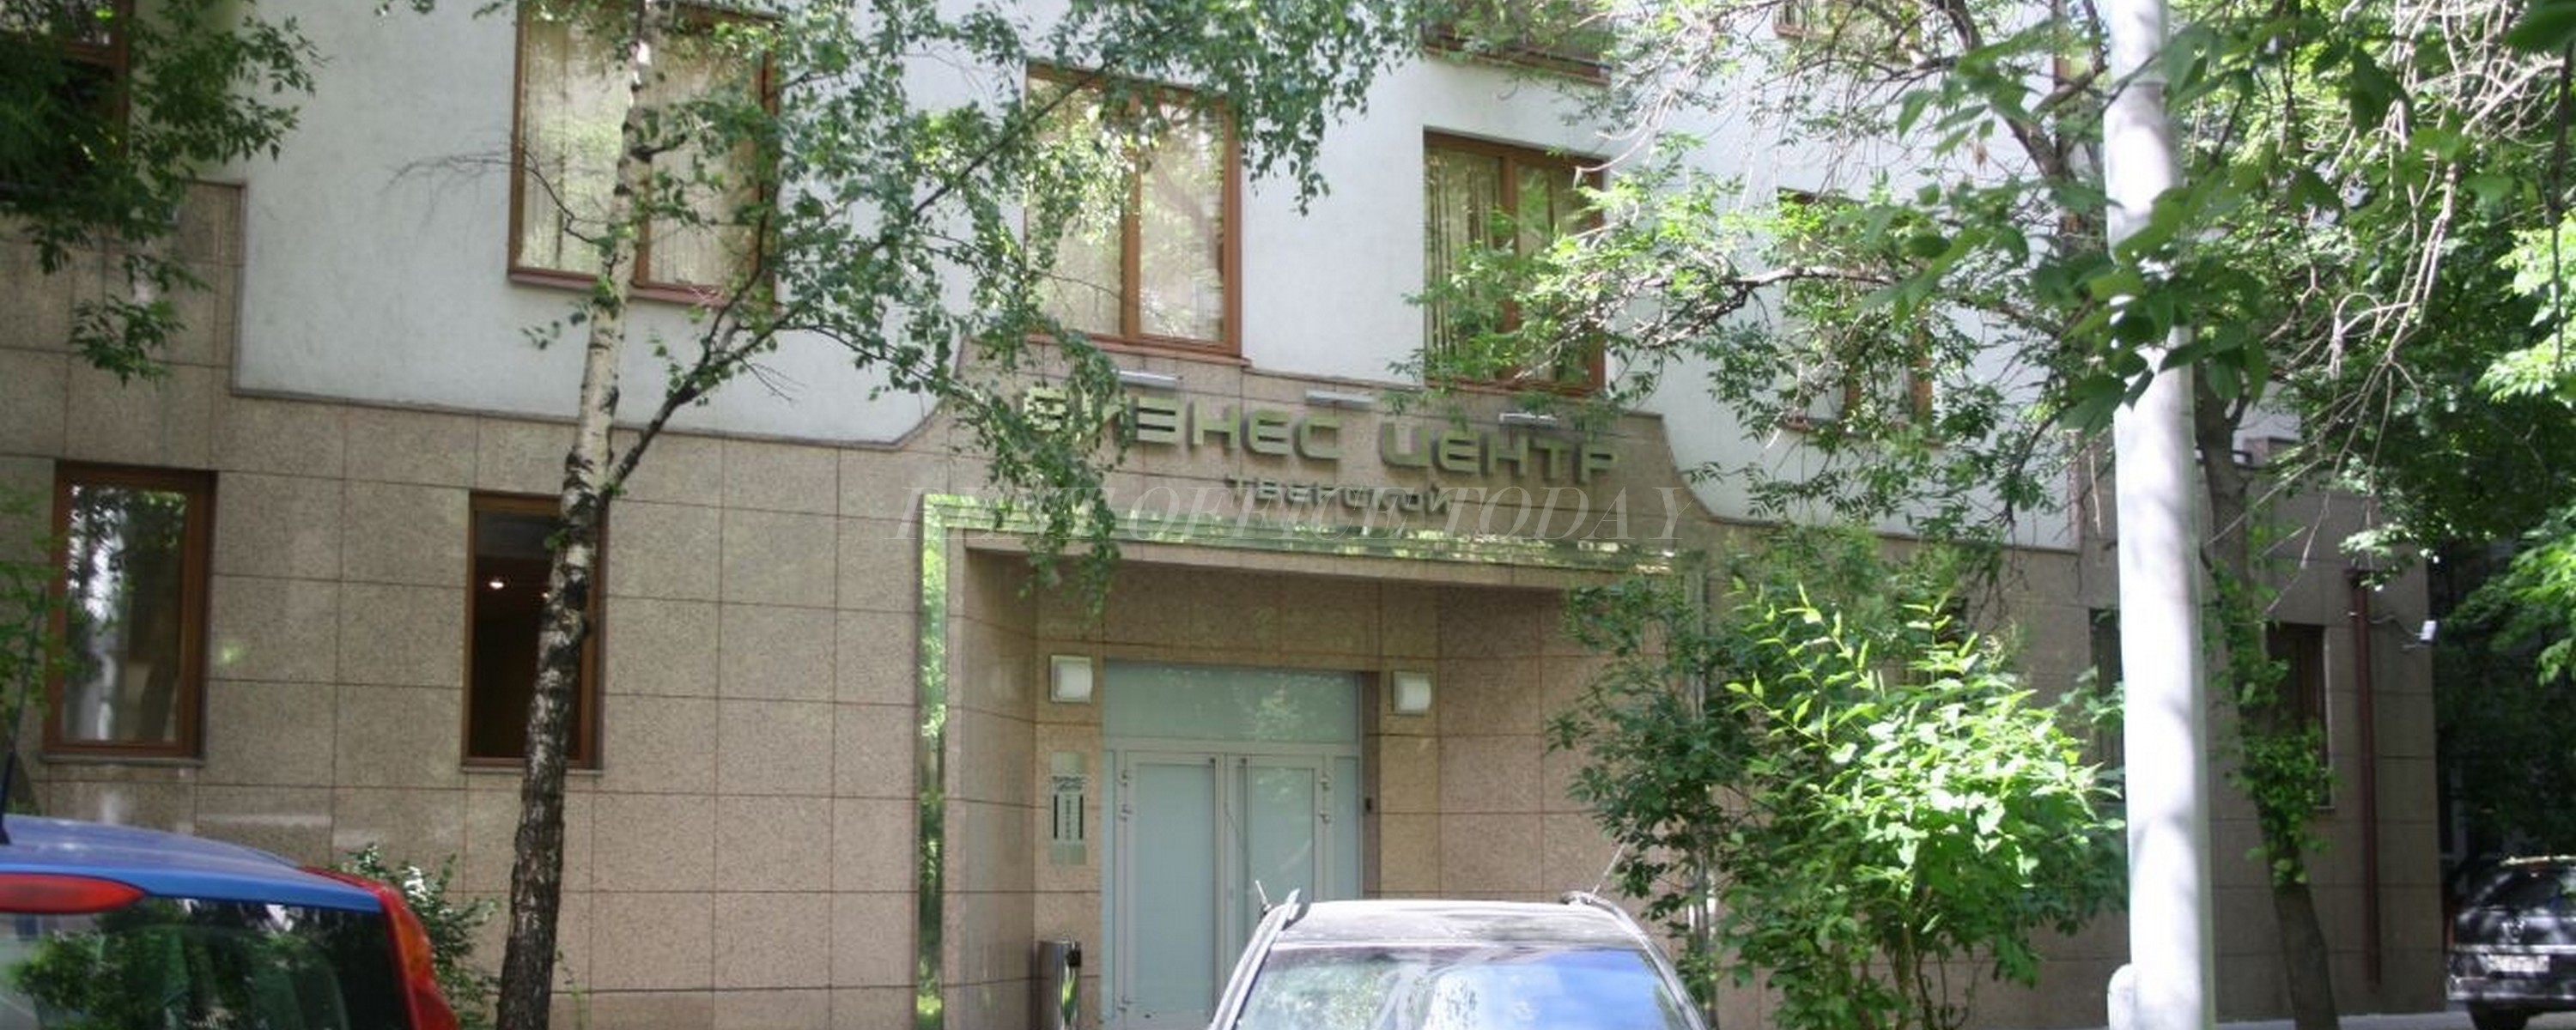 office rent 2 tverskaya-yamskaya 16-18-4